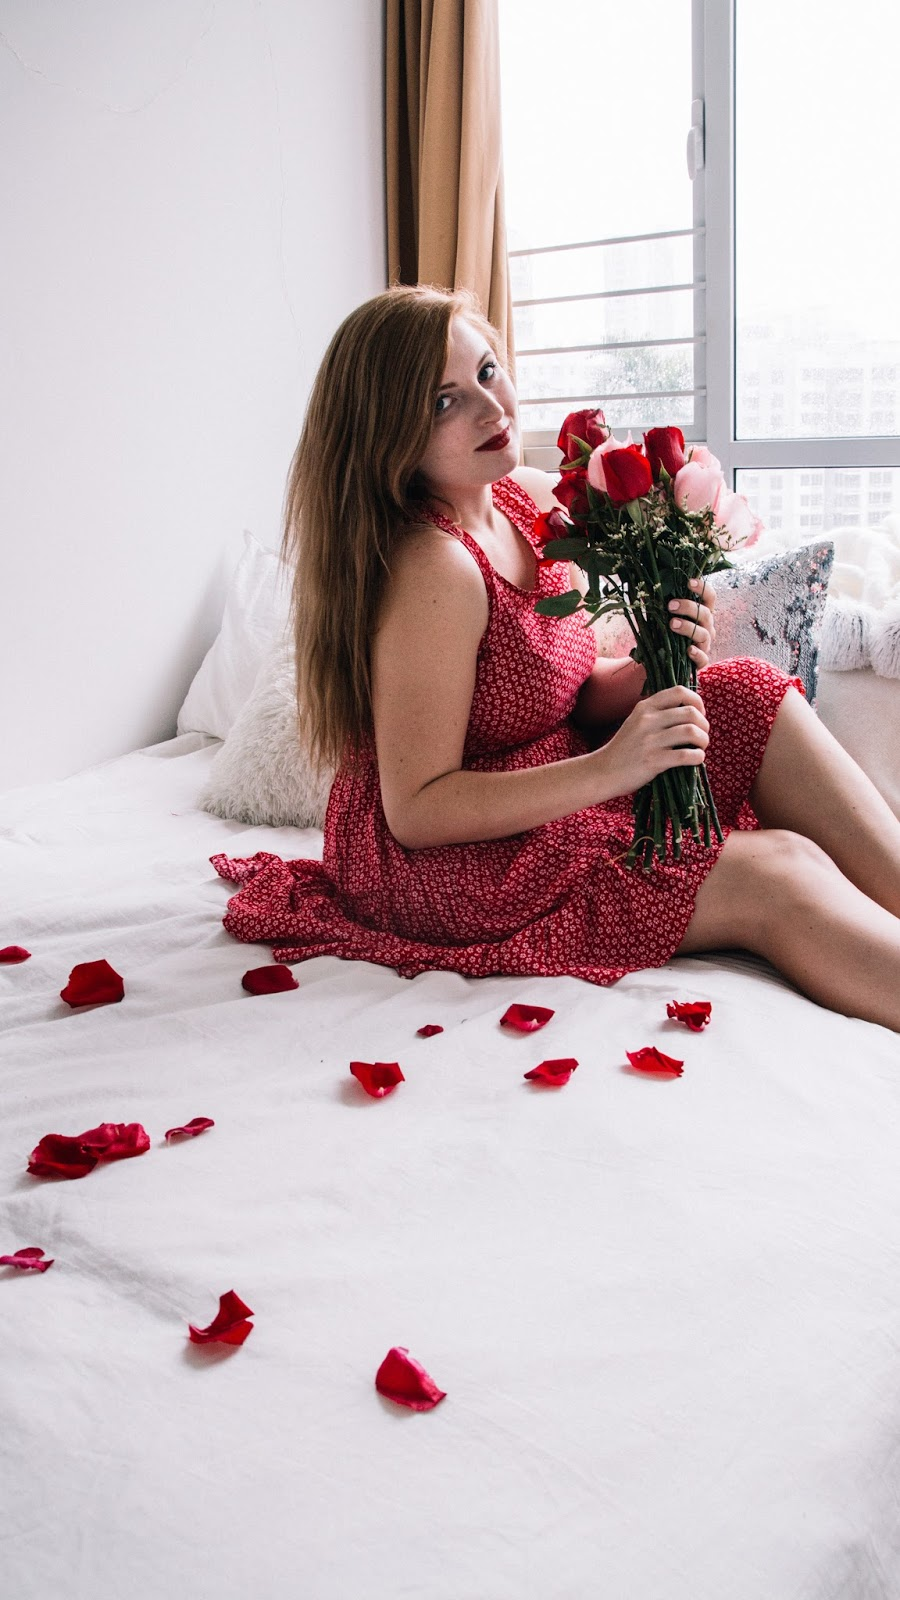 Valentine's Day Surprise | Global Fashion Gal by Brianna Degaston